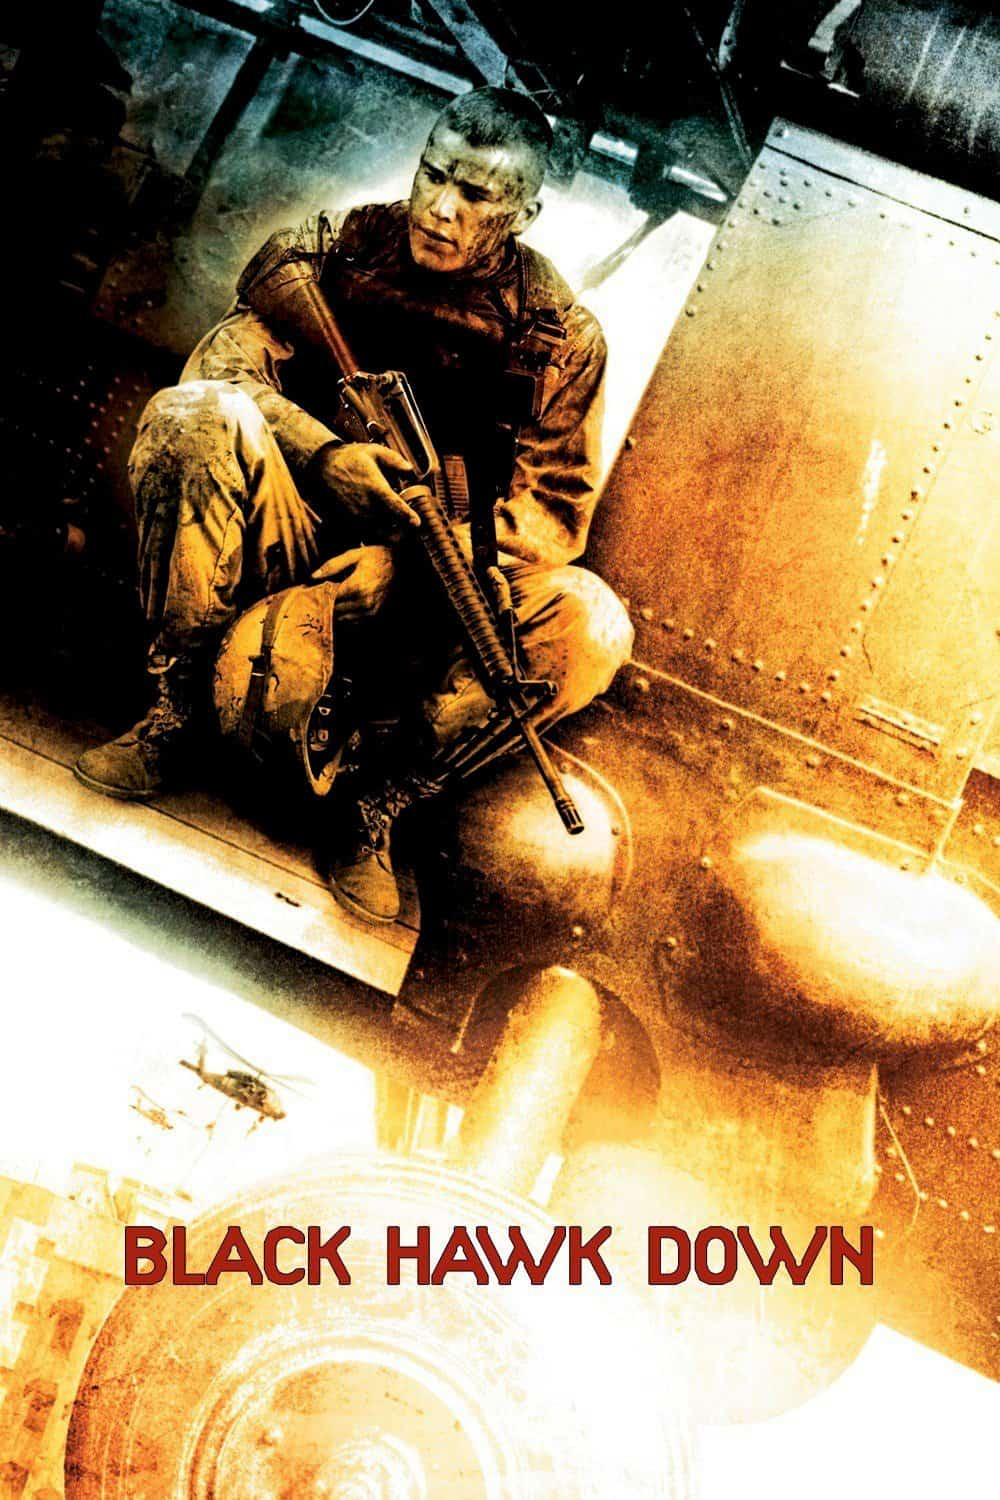 Black Hawk Down, 2001